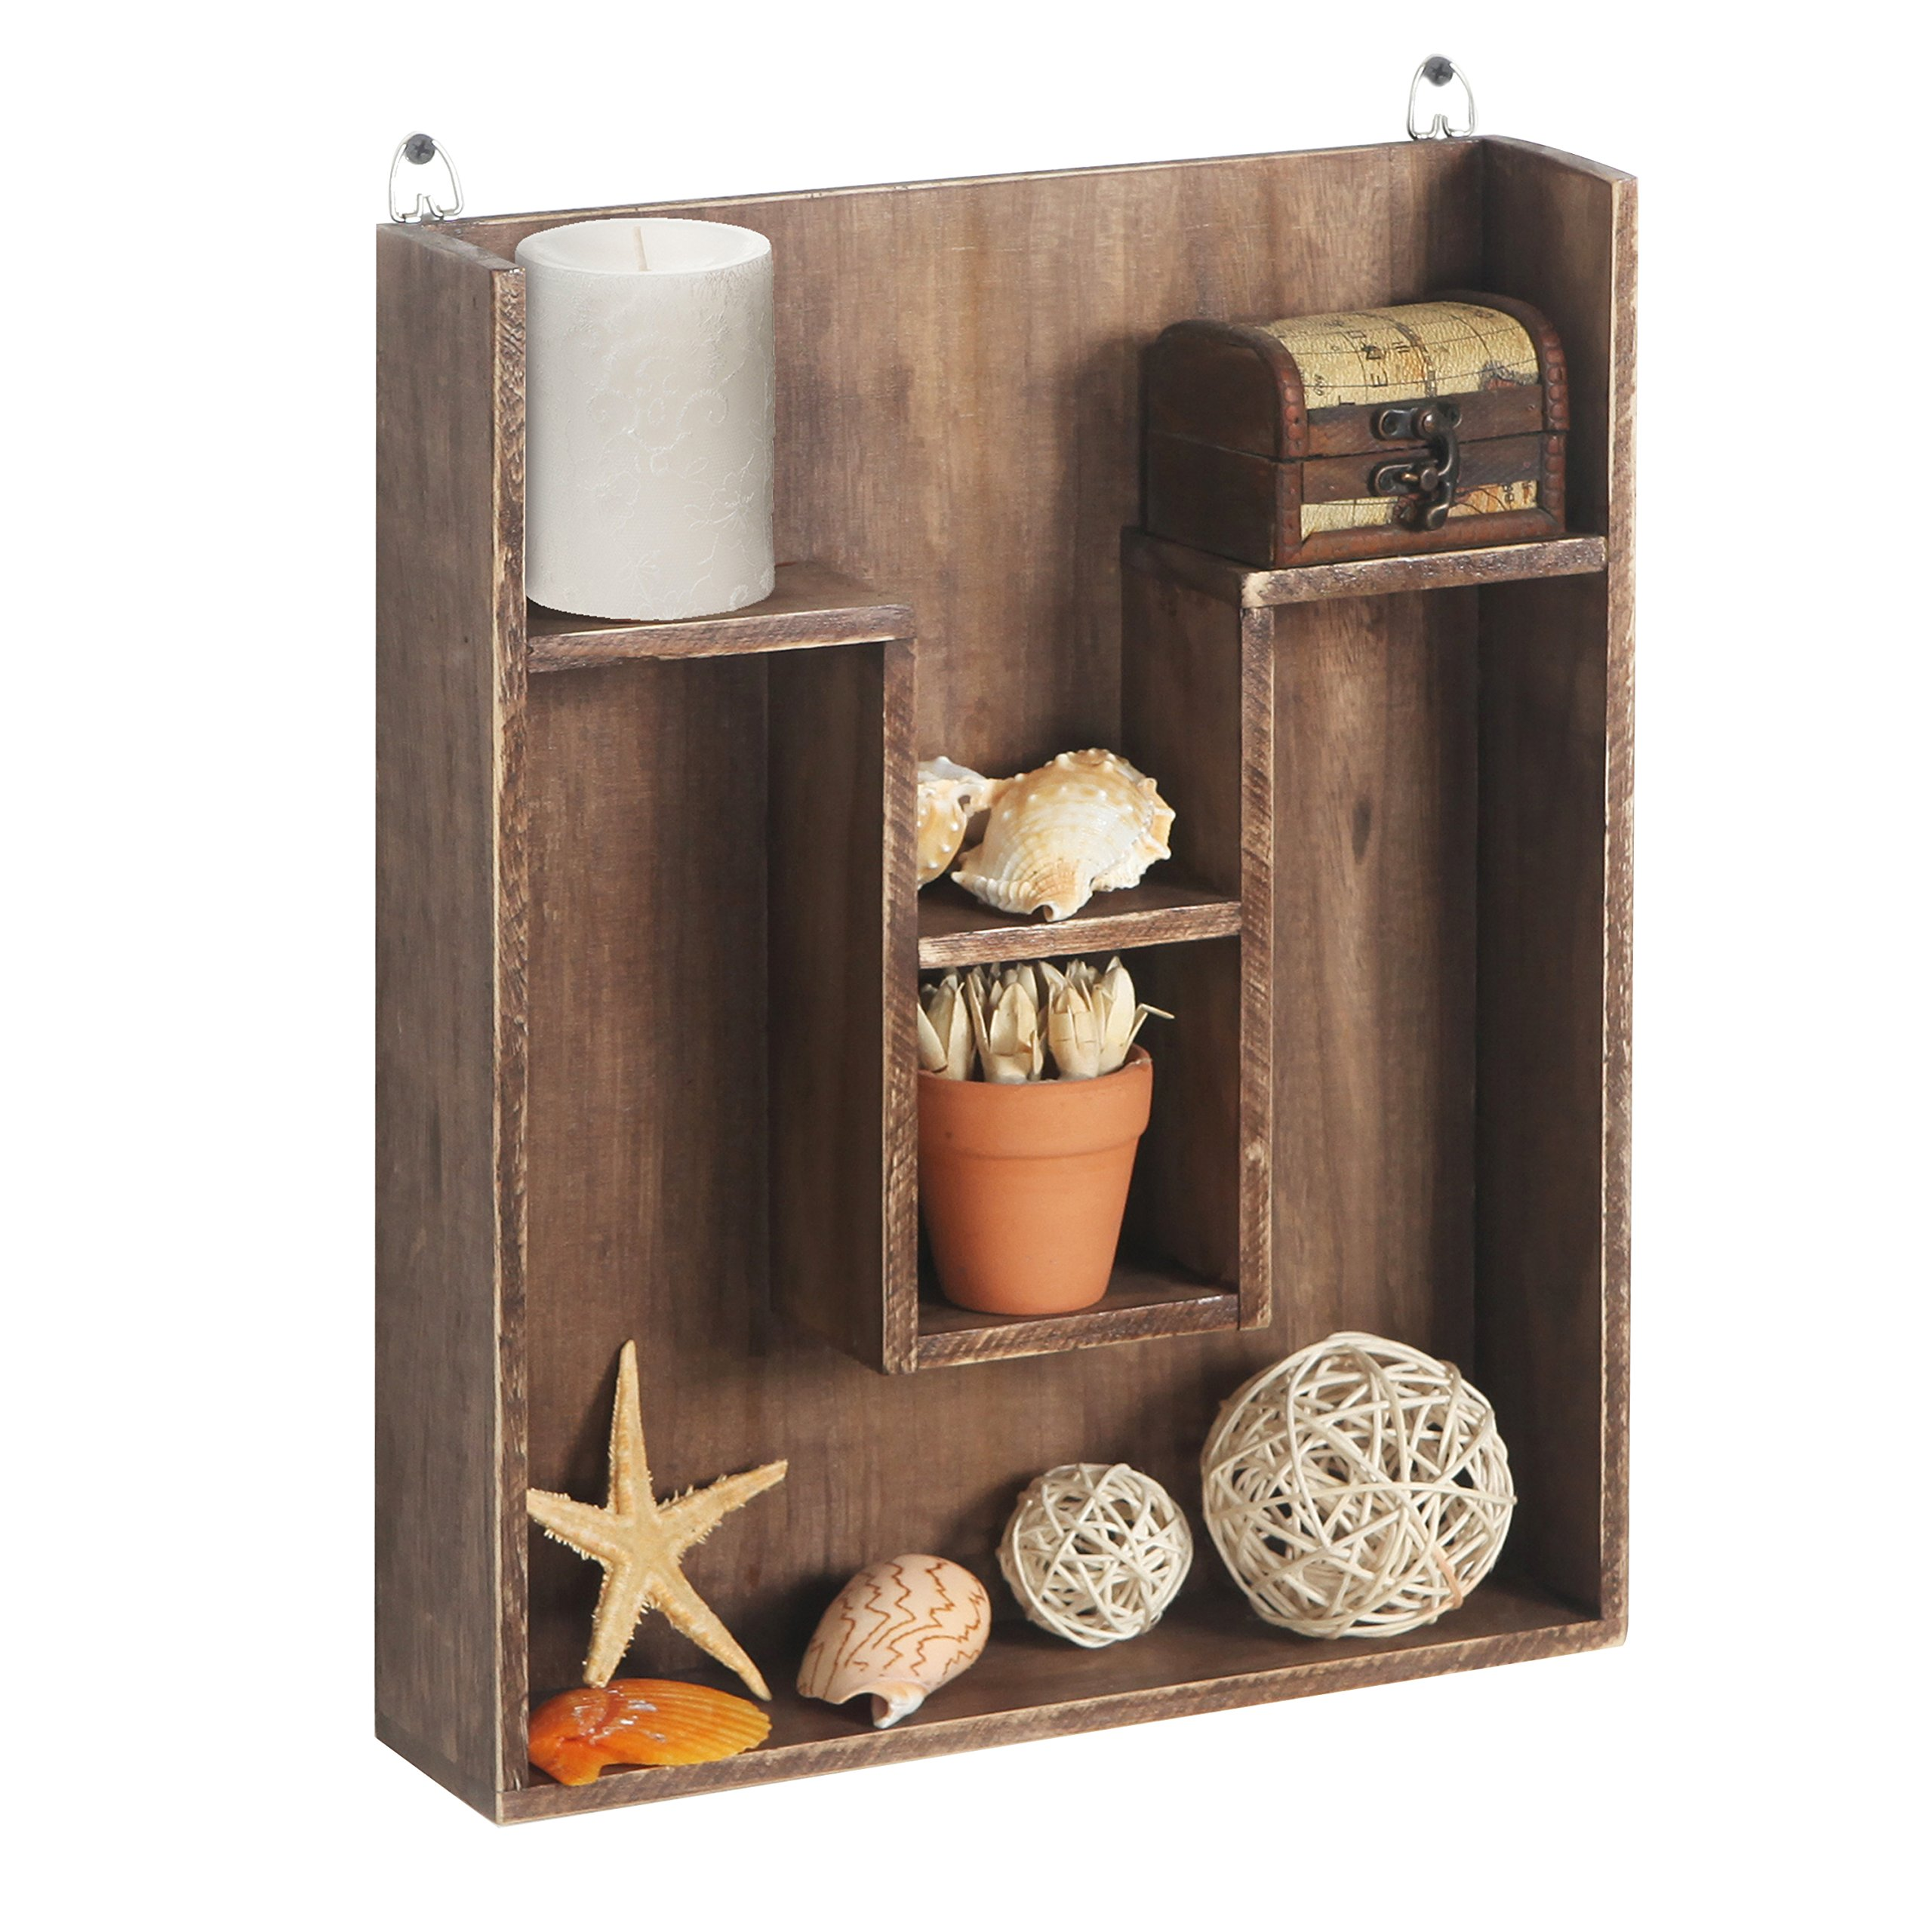 Wall Mounted Wood Cubby Display Storage Shelving Unit Shadow Box Dark Brown